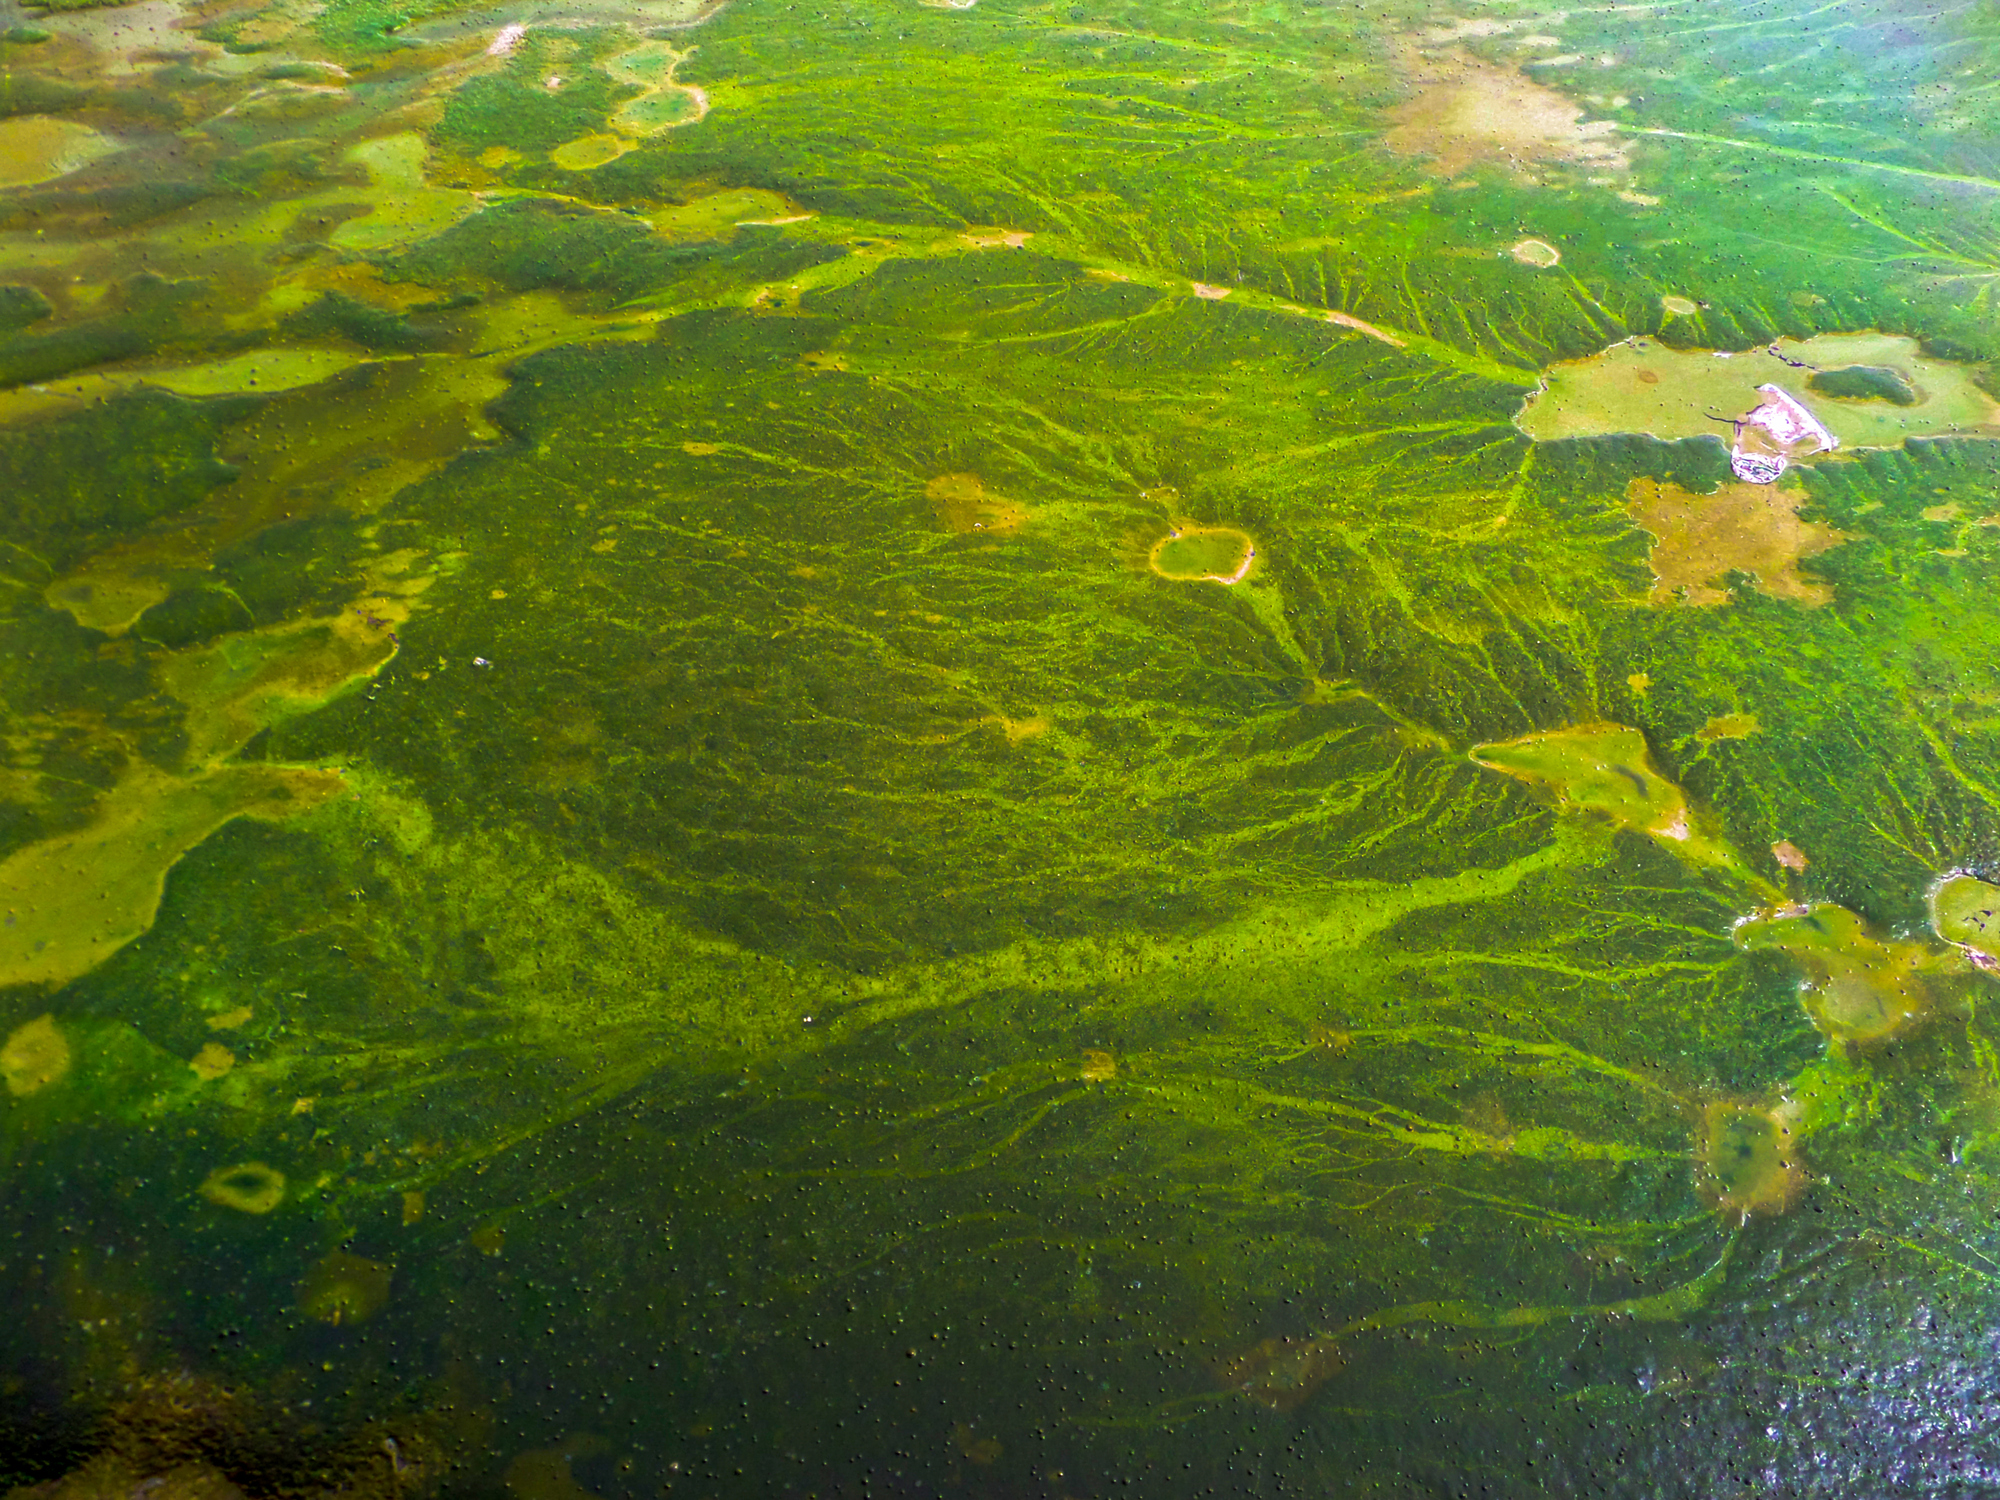 Harmful algal blooms are on the rise, demonstrating the importance of cyanotoxin testing